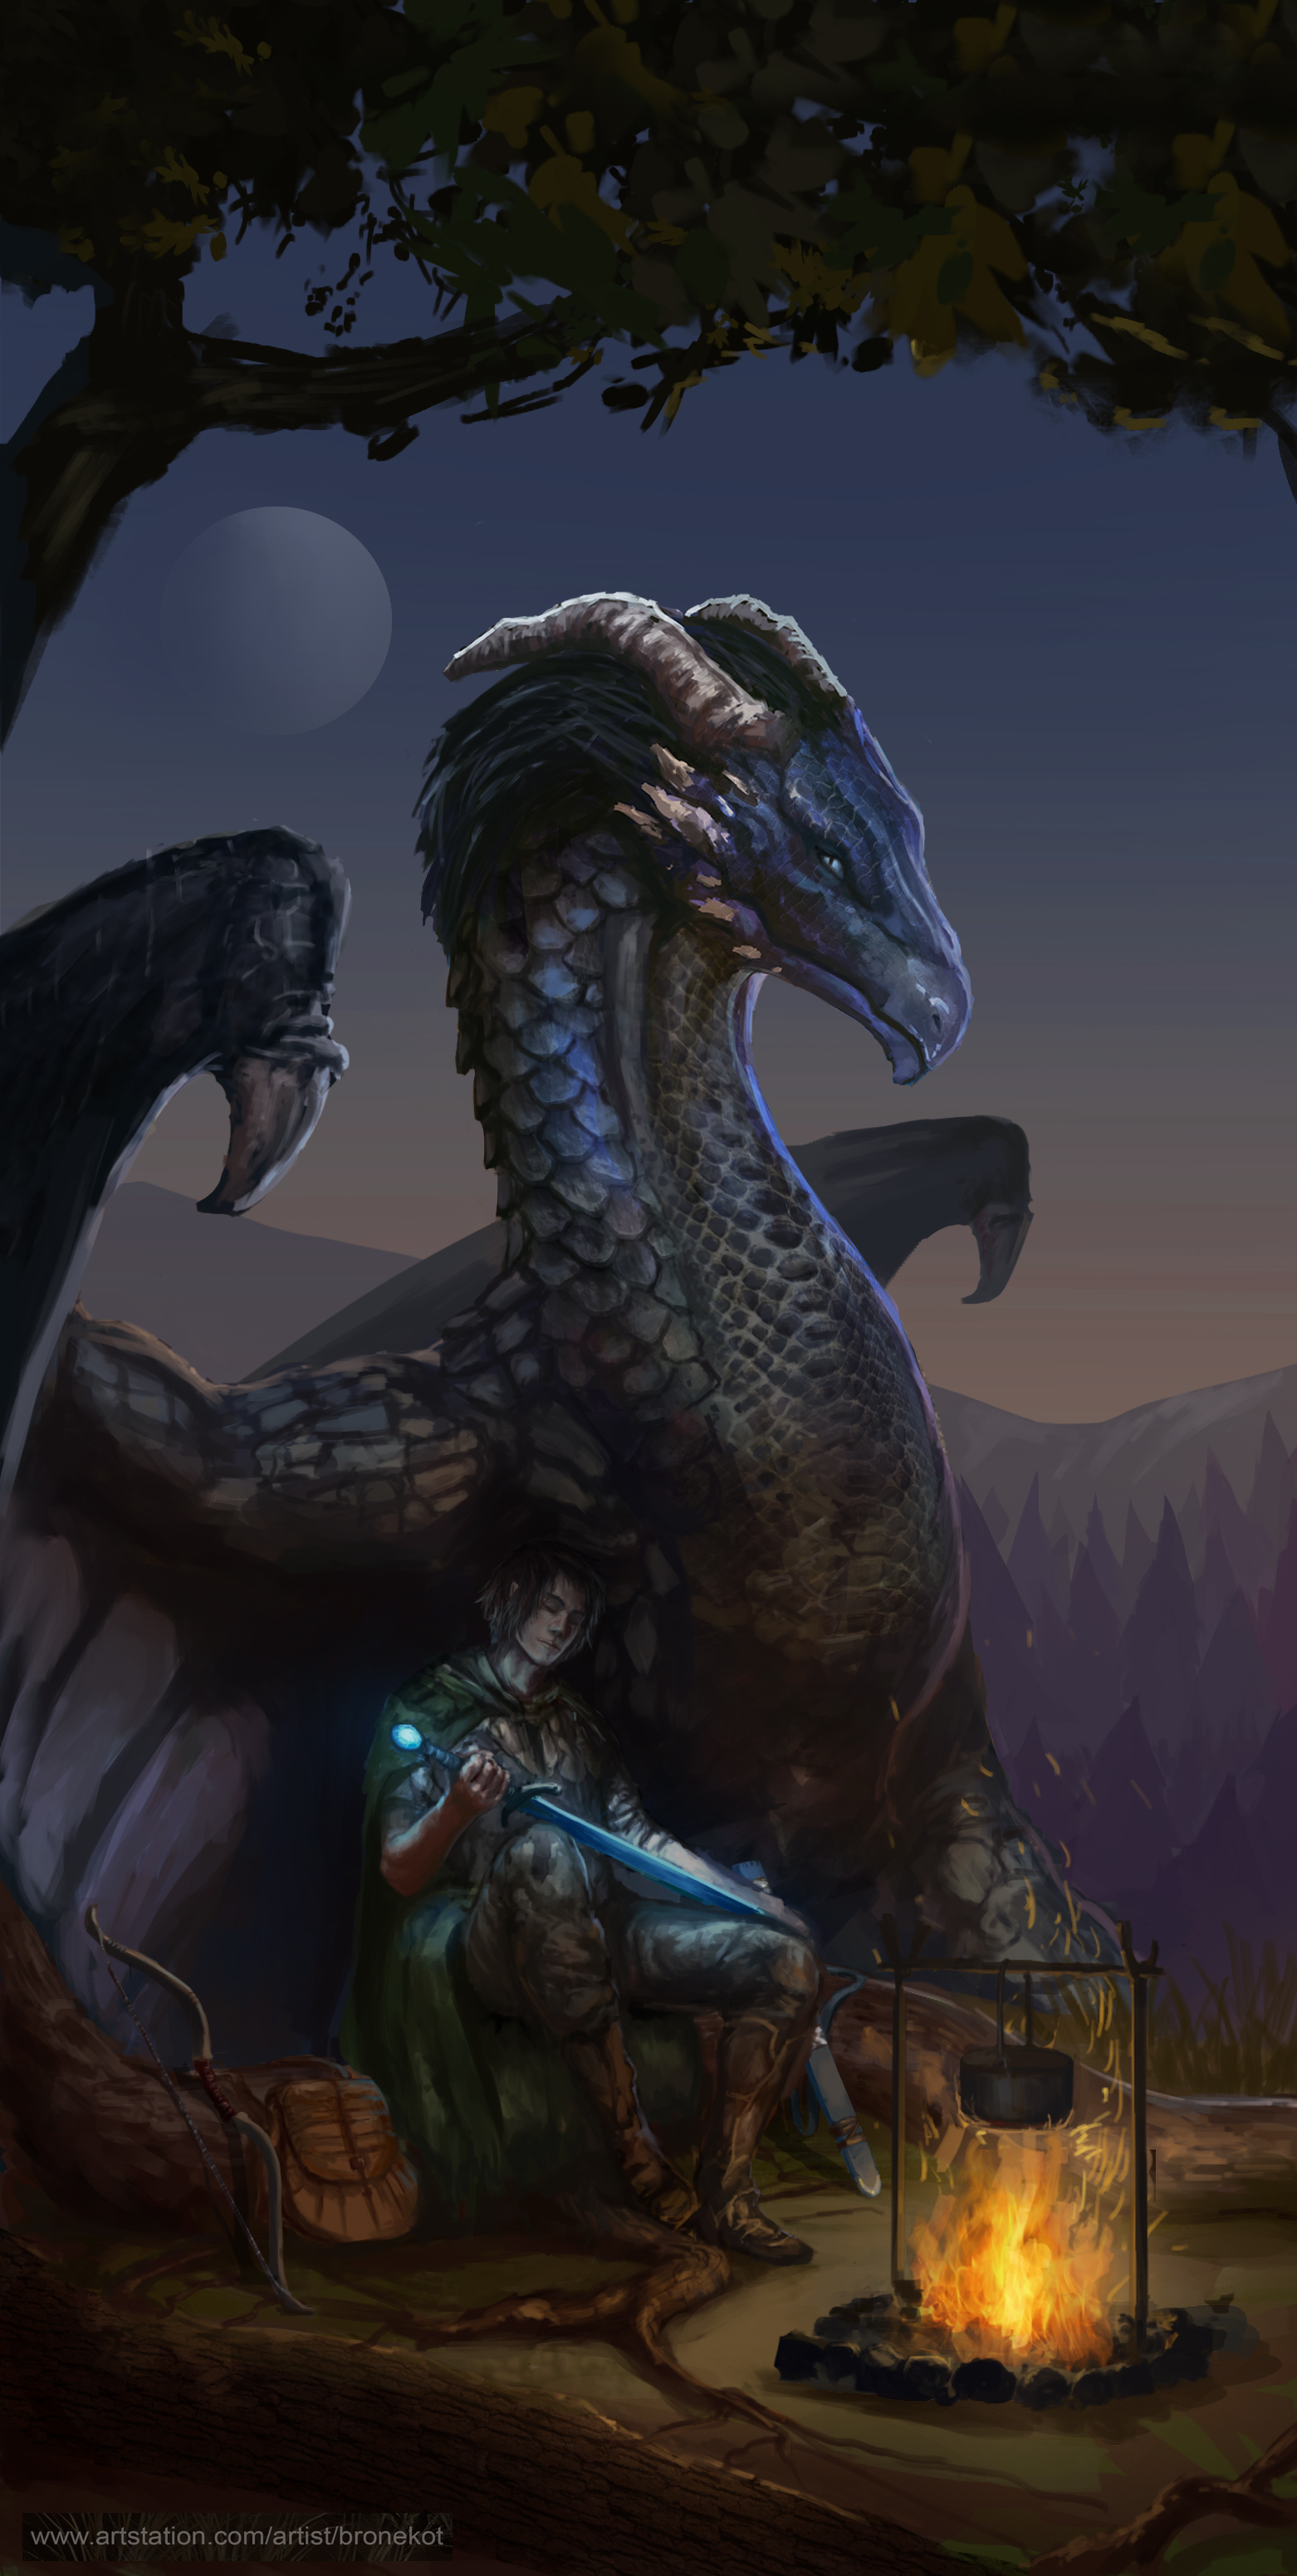 Eragon Vs Battles Wiki Fandom The dragons were not always the ferocious the mysterious discovery of a hybrid dragon, could this be what eragon was told about or is there. eragon vs battles wiki fandom